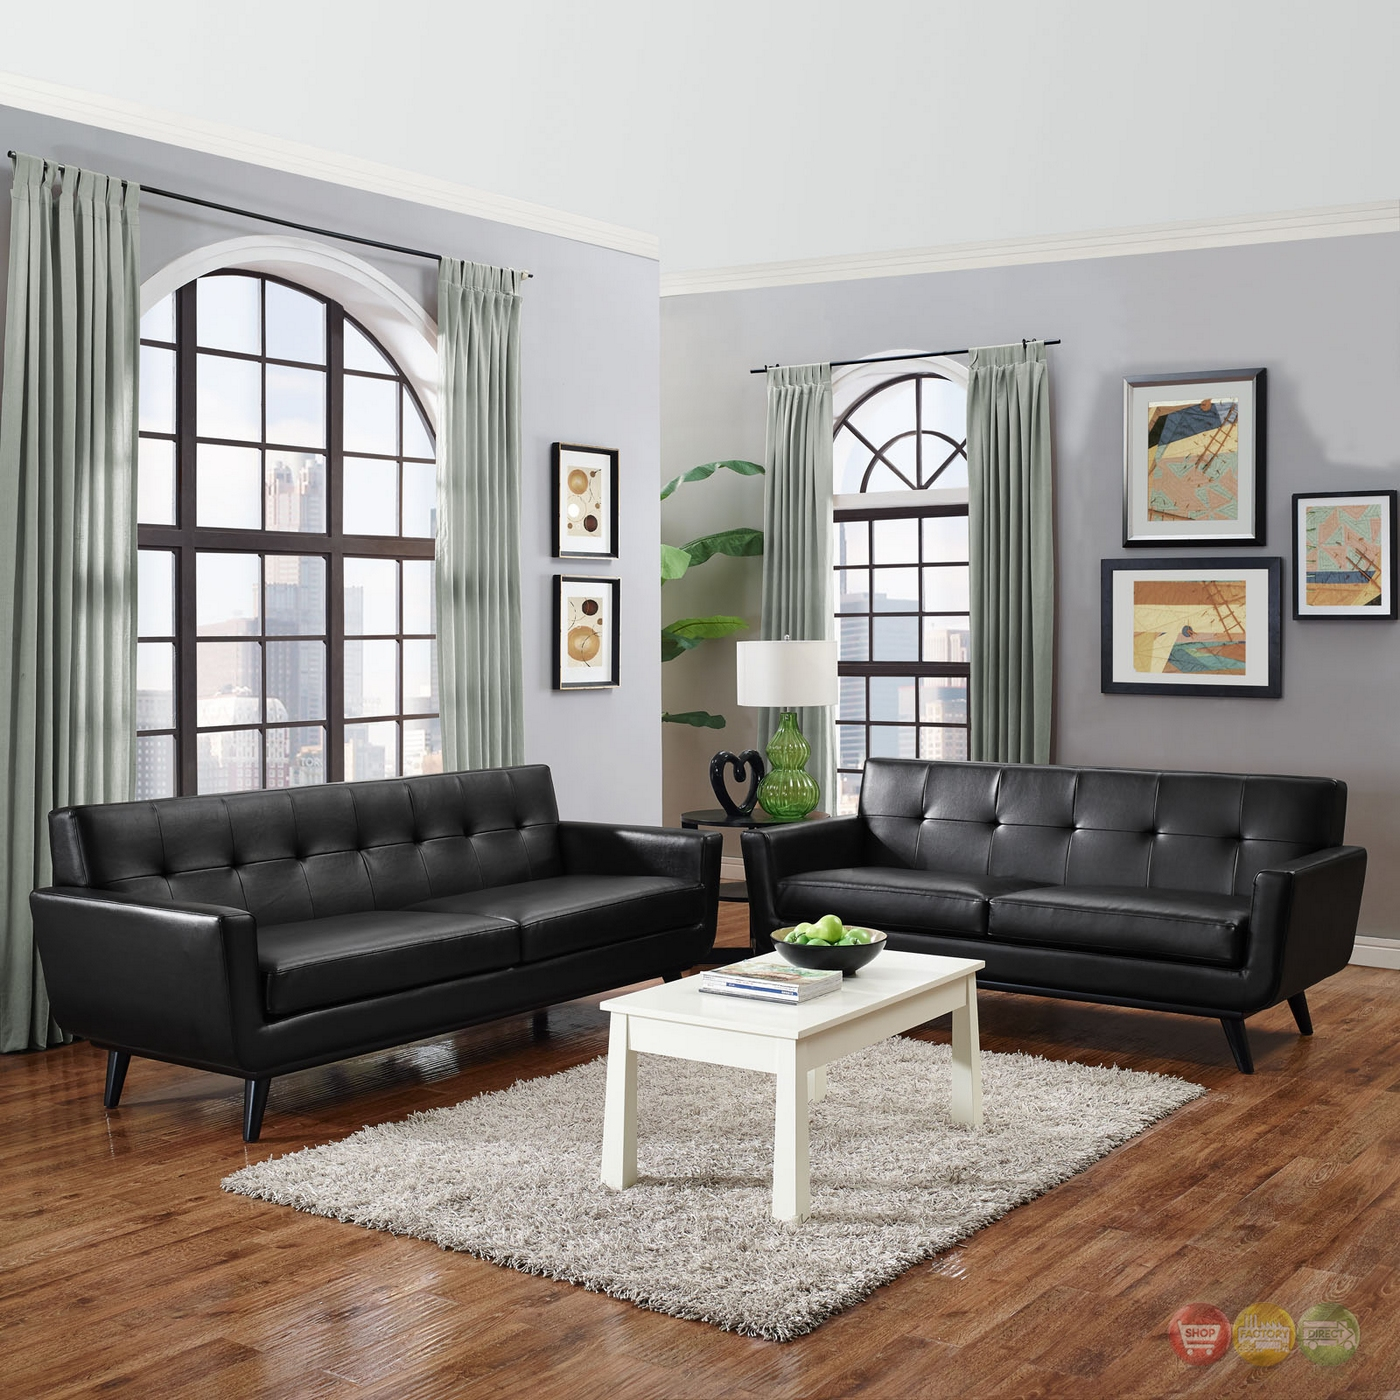 engage contemporary 2pc button tufted leather living room set black. Black Bedroom Furniture Sets. Home Design Ideas